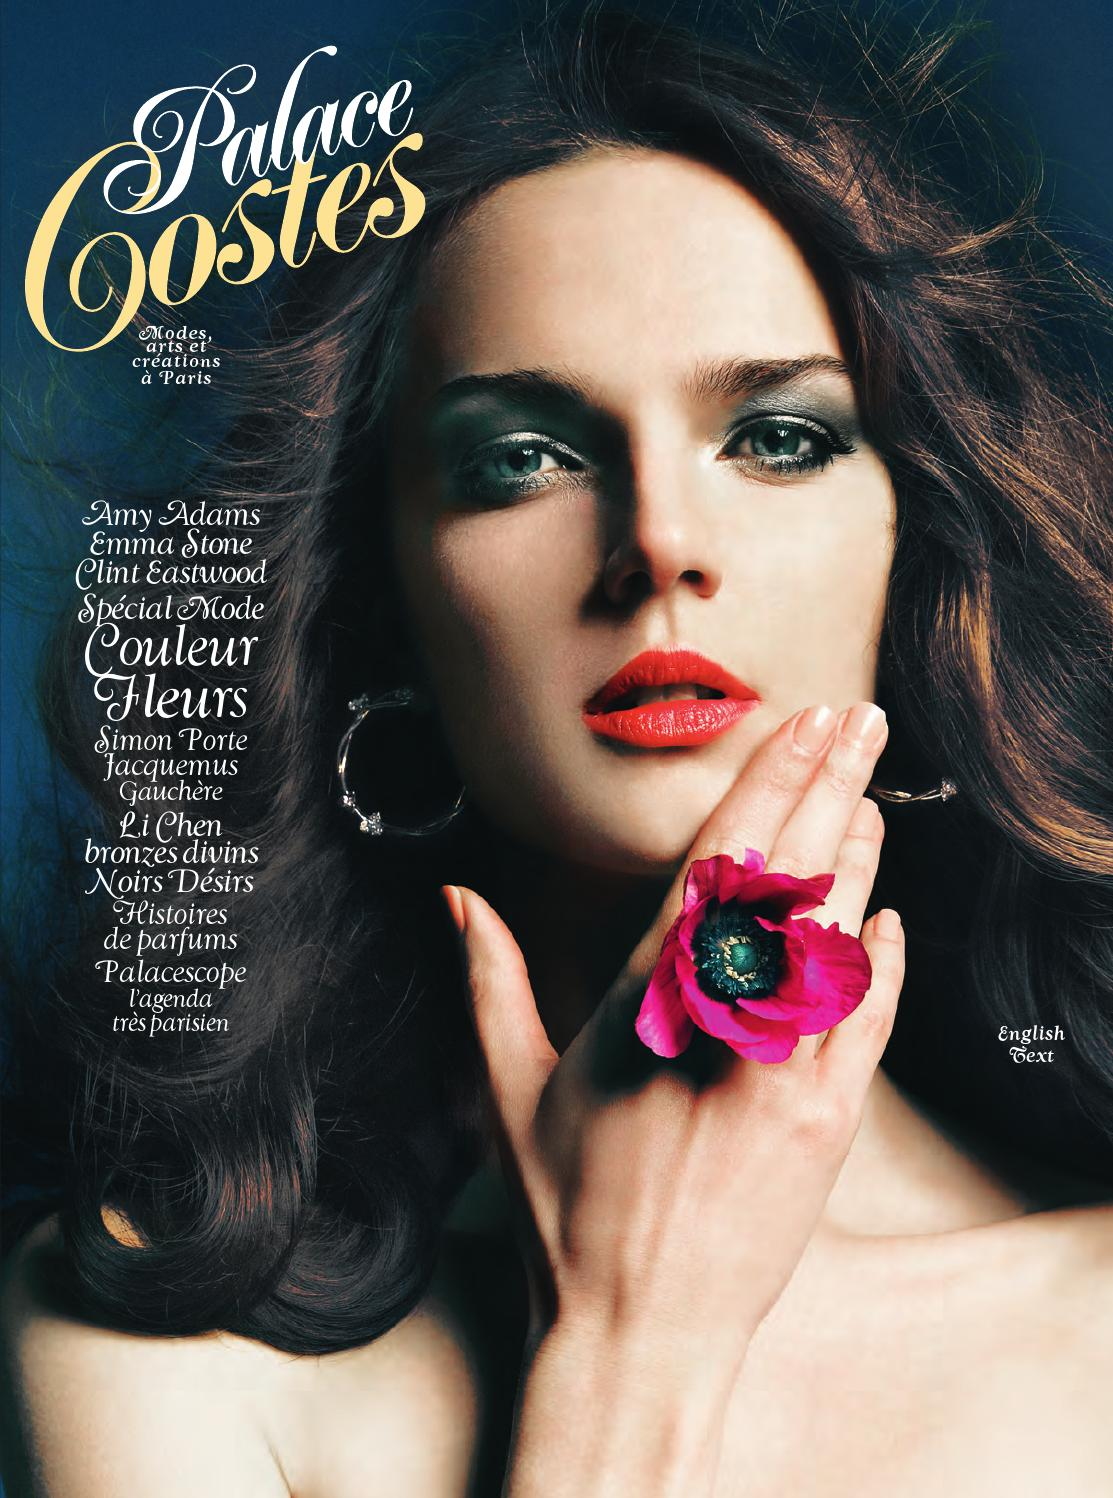 6ff5027a8885 Palacecostes56 by Palace Costes - issuu